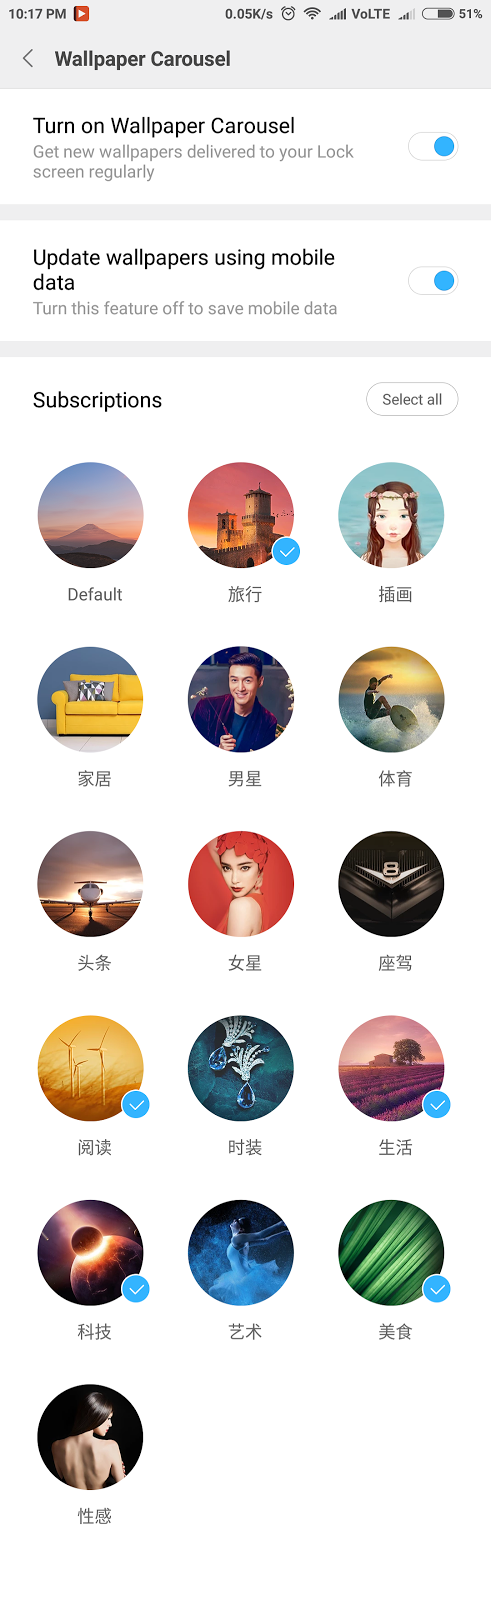 Enable Wallpaper Carousel on MIUI 8 2